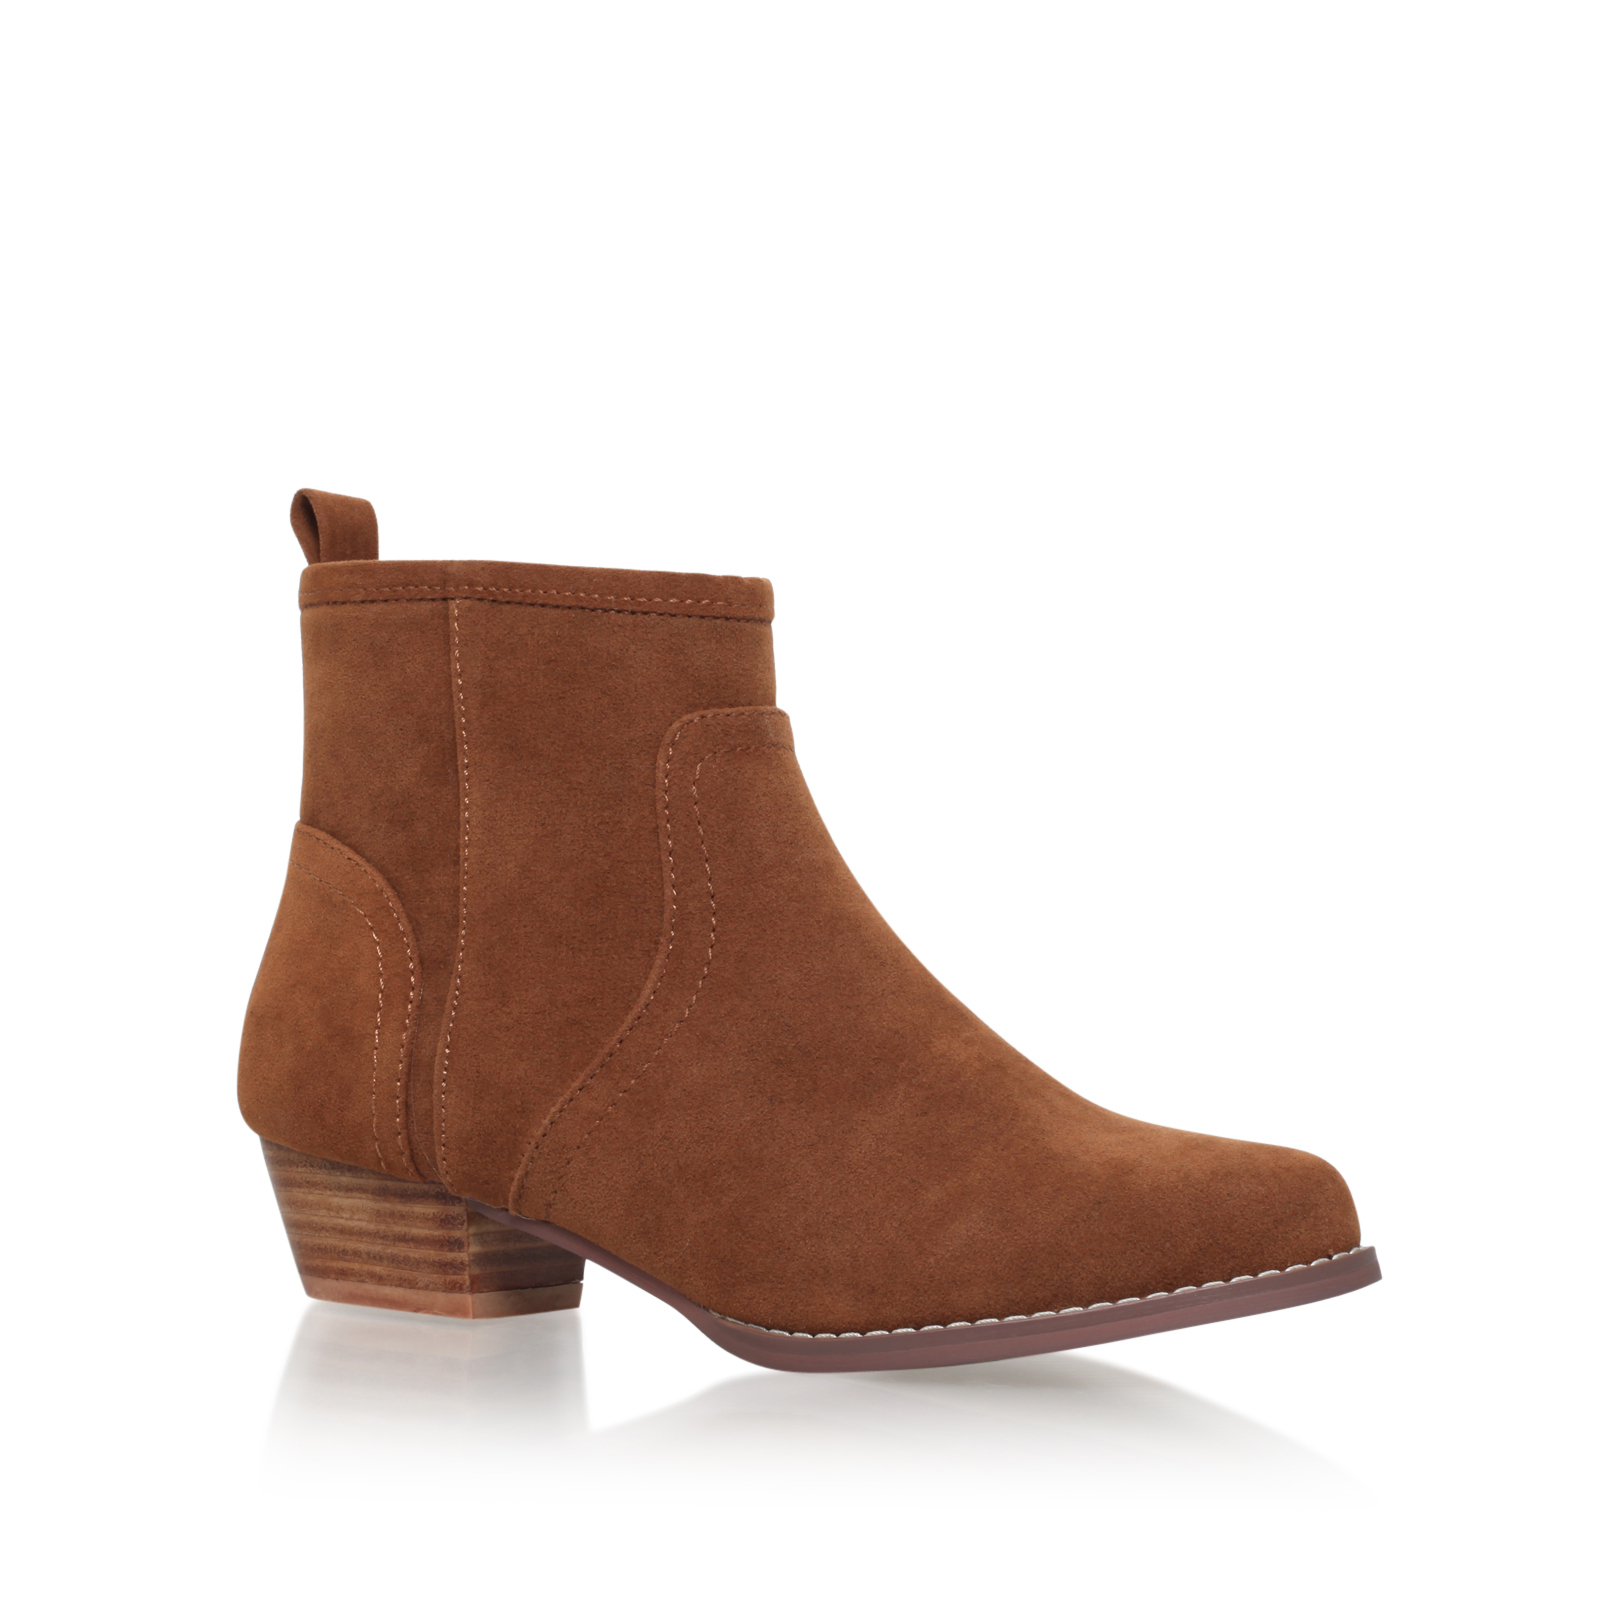 Women's Ankle Boots | Affordable women's ankle boots